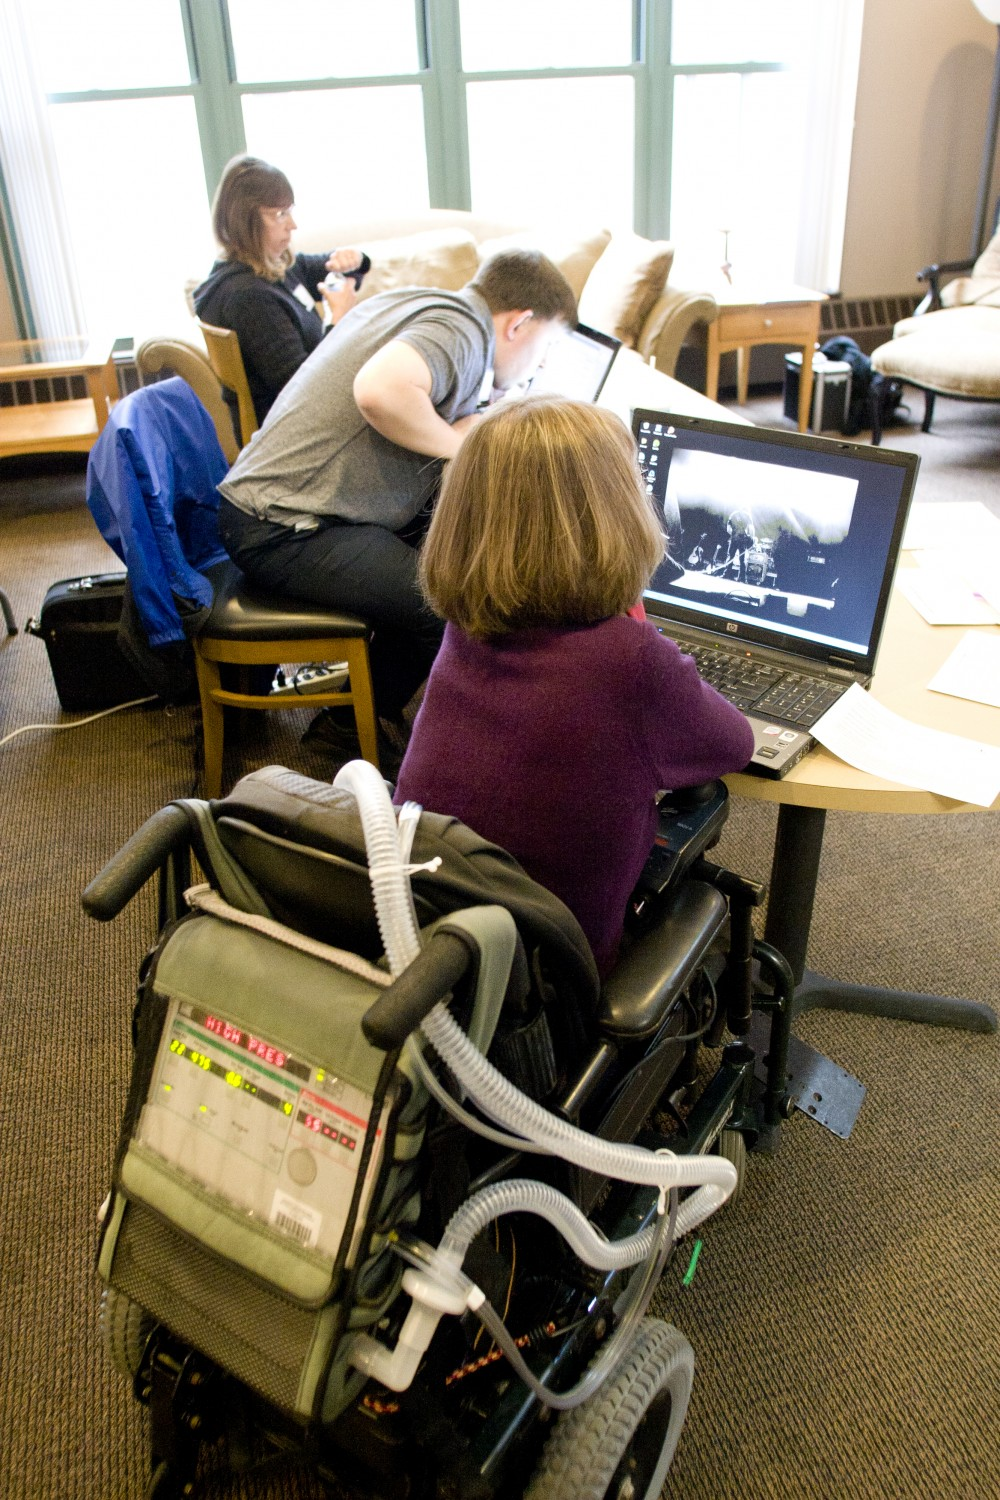 Woman in a wheel chair with a respirator working at a lap top.